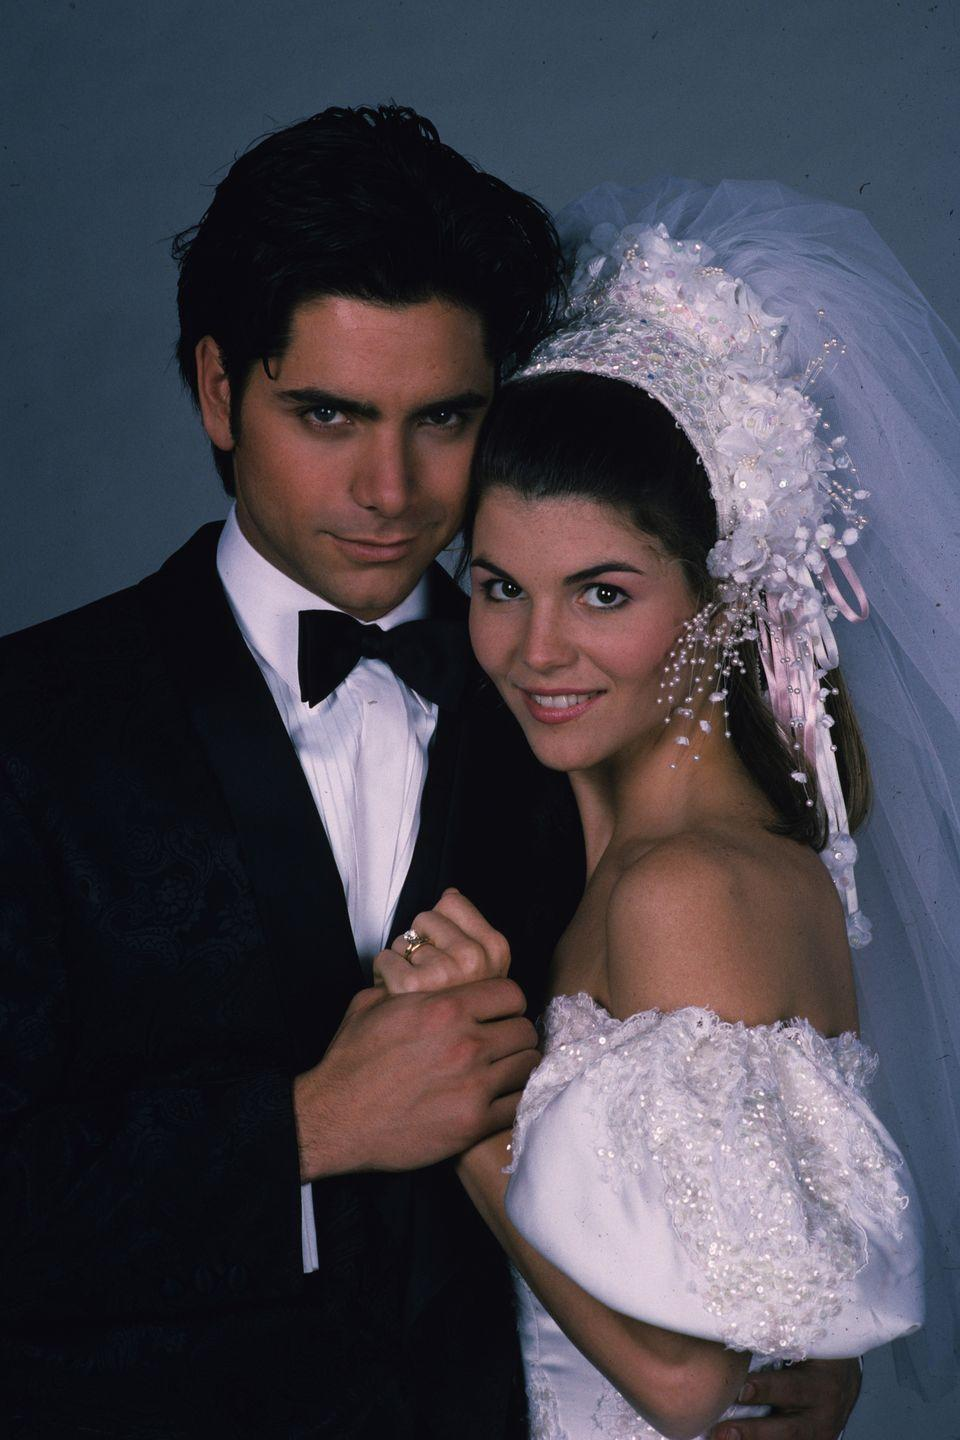 <p><em>Full House</em>'s Becky and Jesse were meant to be<em>—</em>Jesse was the motorcycle jacket-wearing ladies' man while Becky was the put-together news show host. The pair tied the knot in season 4, when Becky wore this off-the-shoulder puff-sleeve gown. </p>